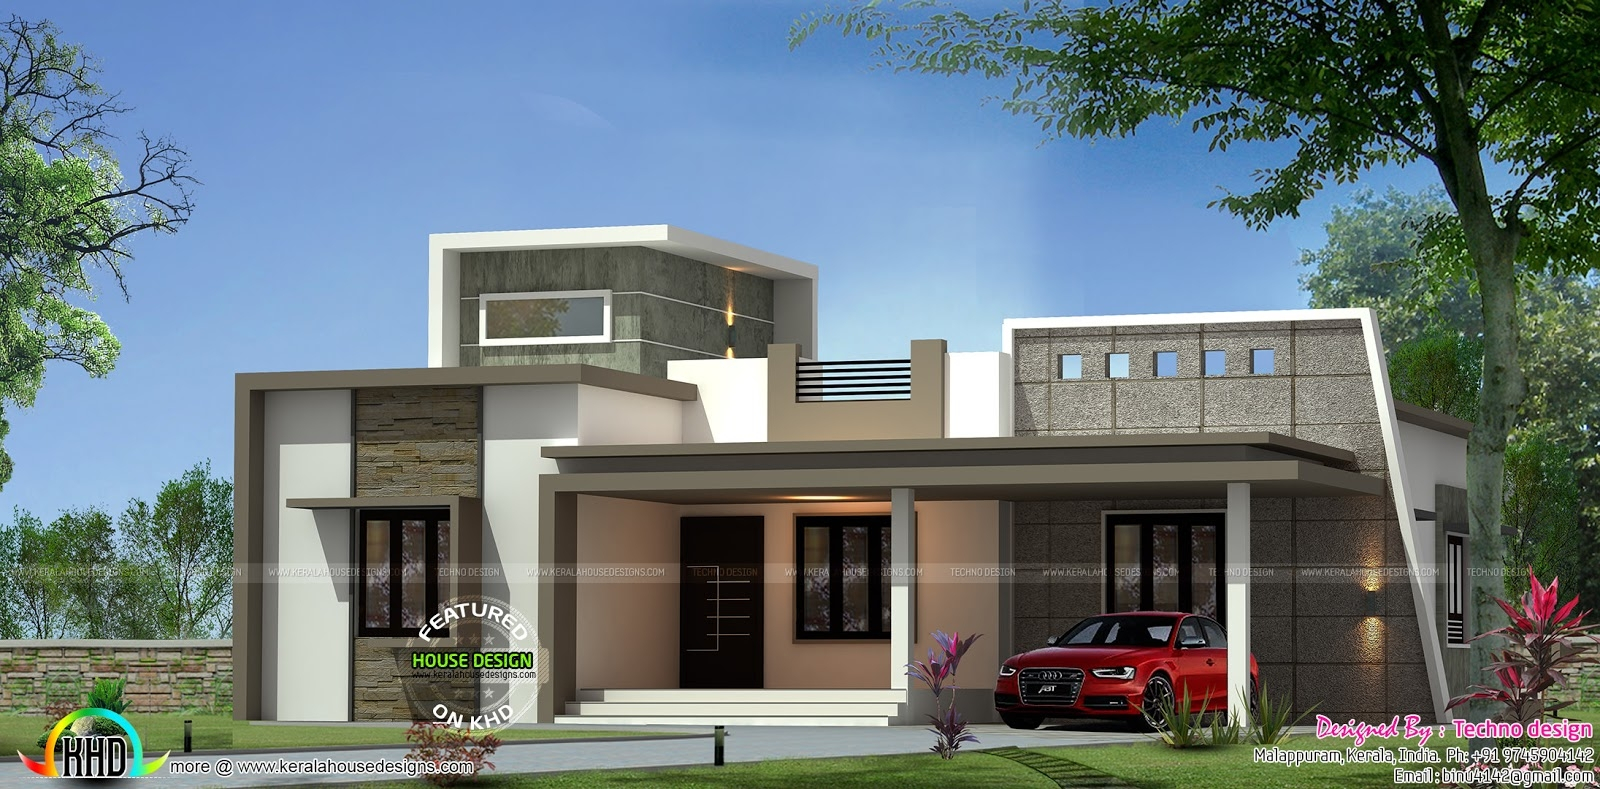 Fancy New House Plans Kerala Asian March Home Design And Floor 2 Bedroom pertaining to New House Plans In Kerala